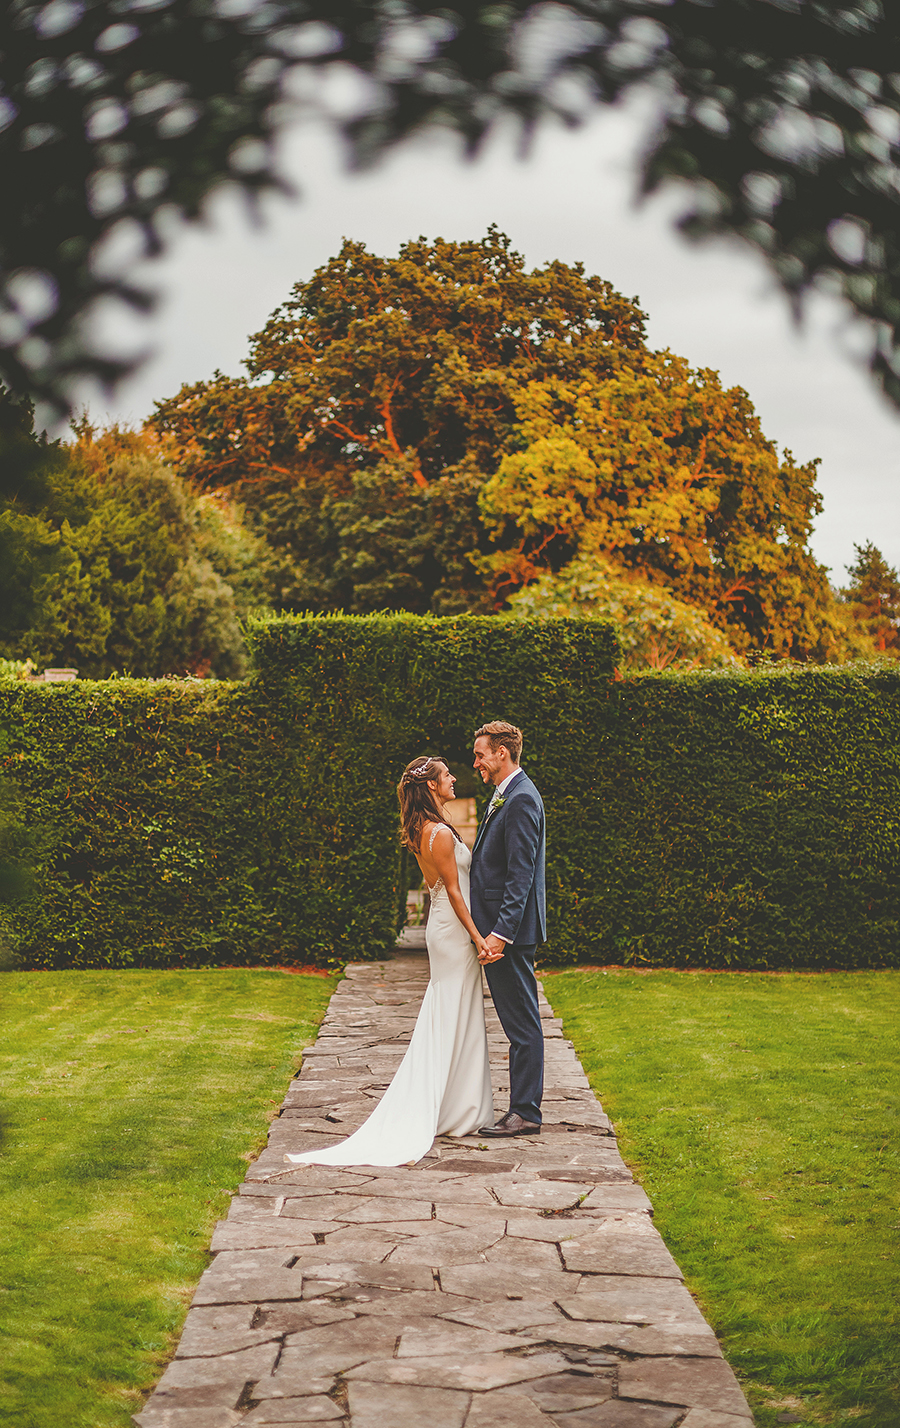 Beautiful summer wedding at Barley Wood, images by Howell Jones Photography (37)